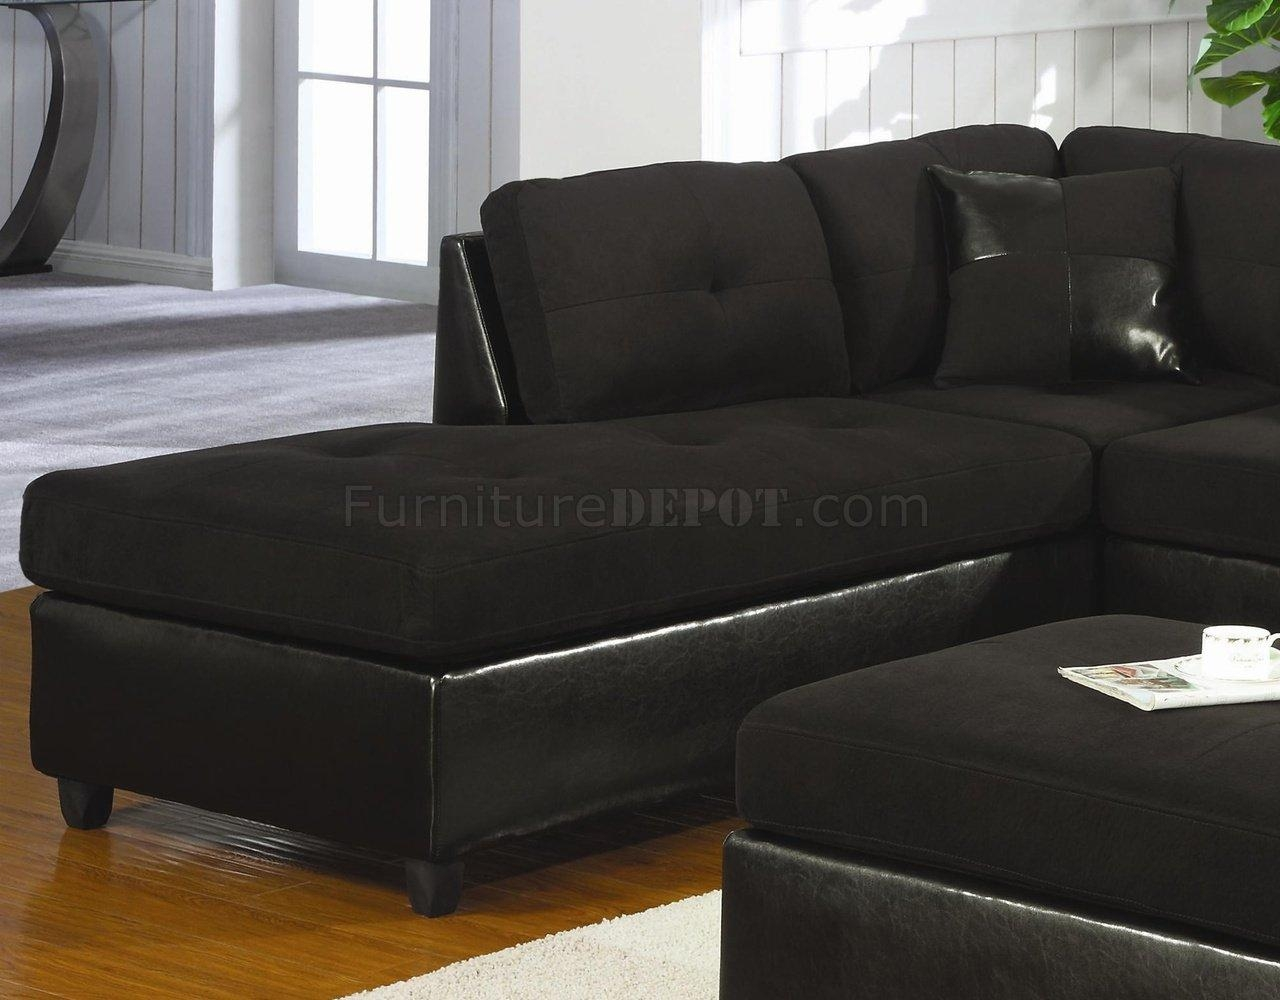 Big Couch 25 Top Big Comfy Sofas Sofa Ideas